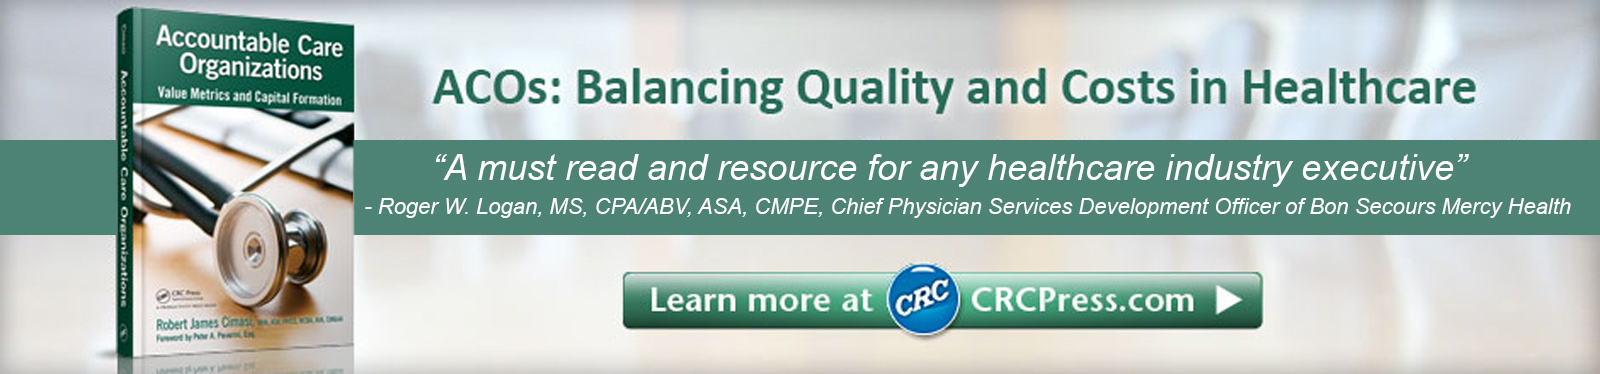 Accountable Care Organizations Banner